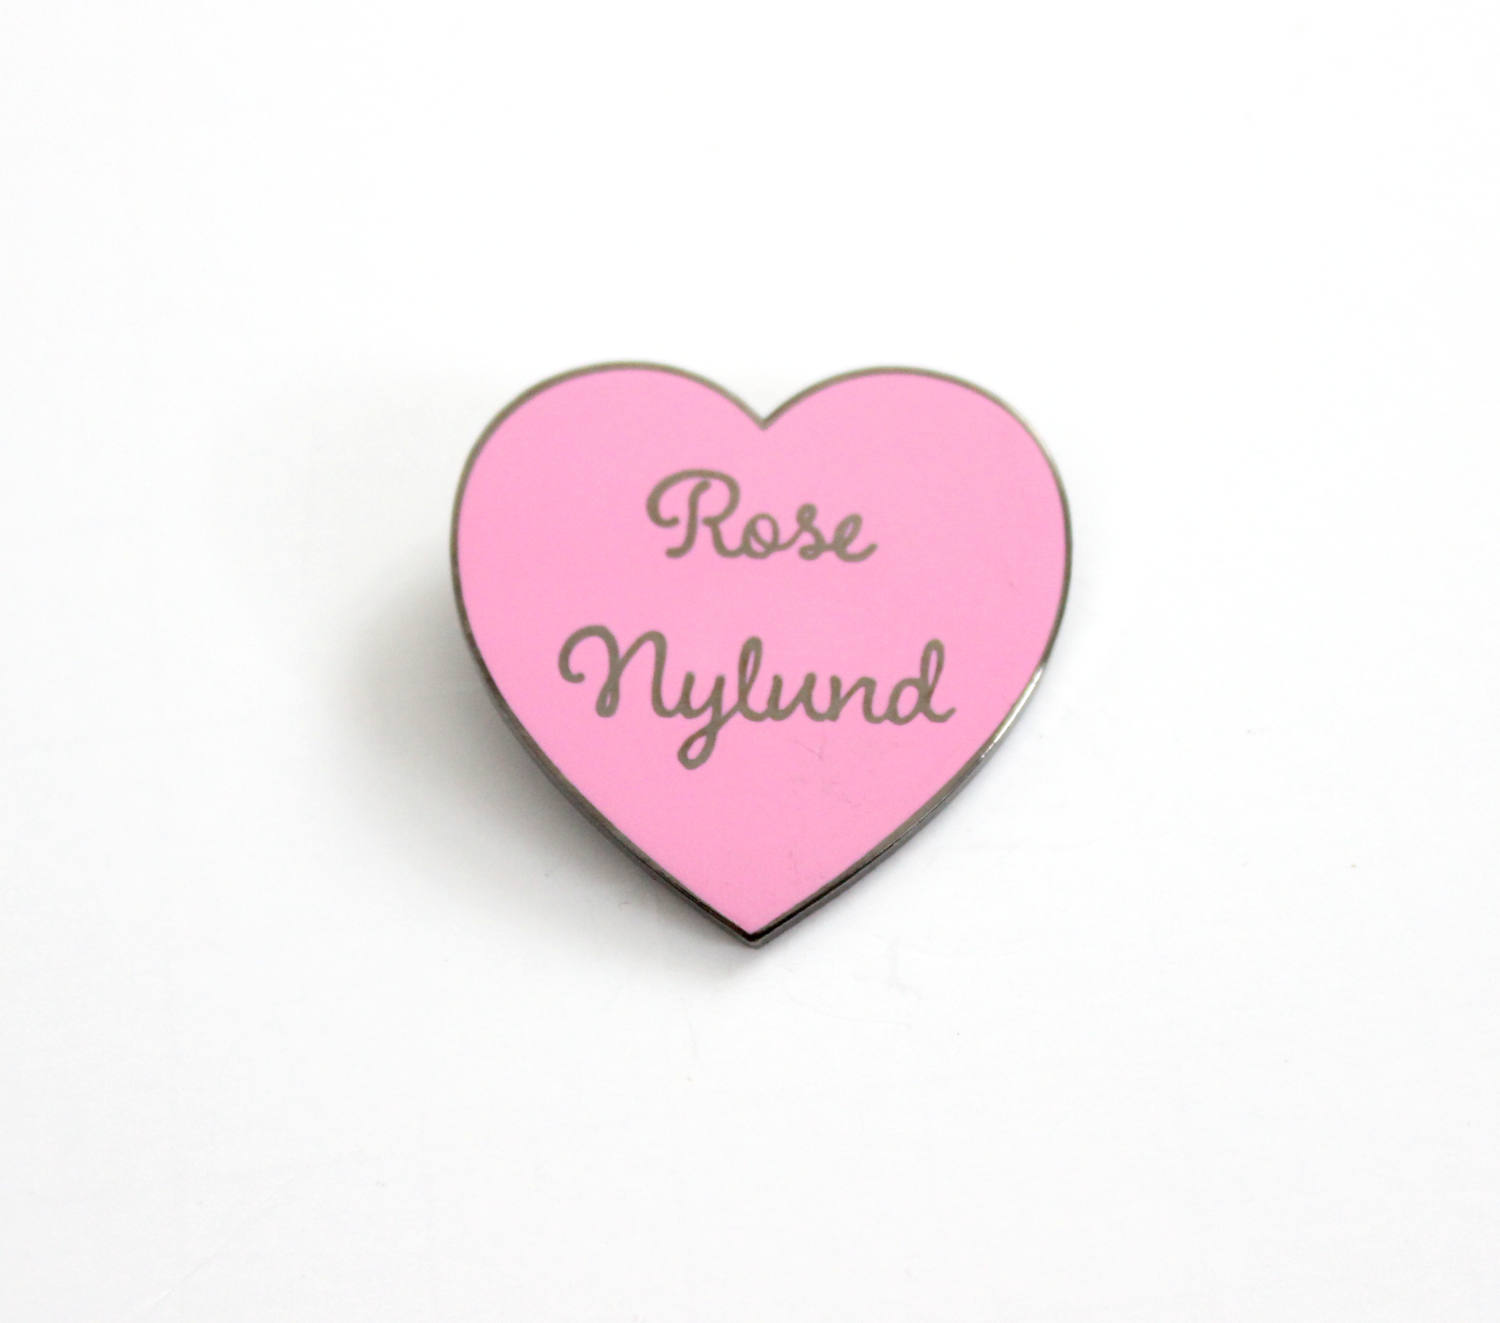 Pink Tv Online Rose Nylund Pink And Black Nickel Heart Pin Golden Girls Tv Show Inspired 1 25